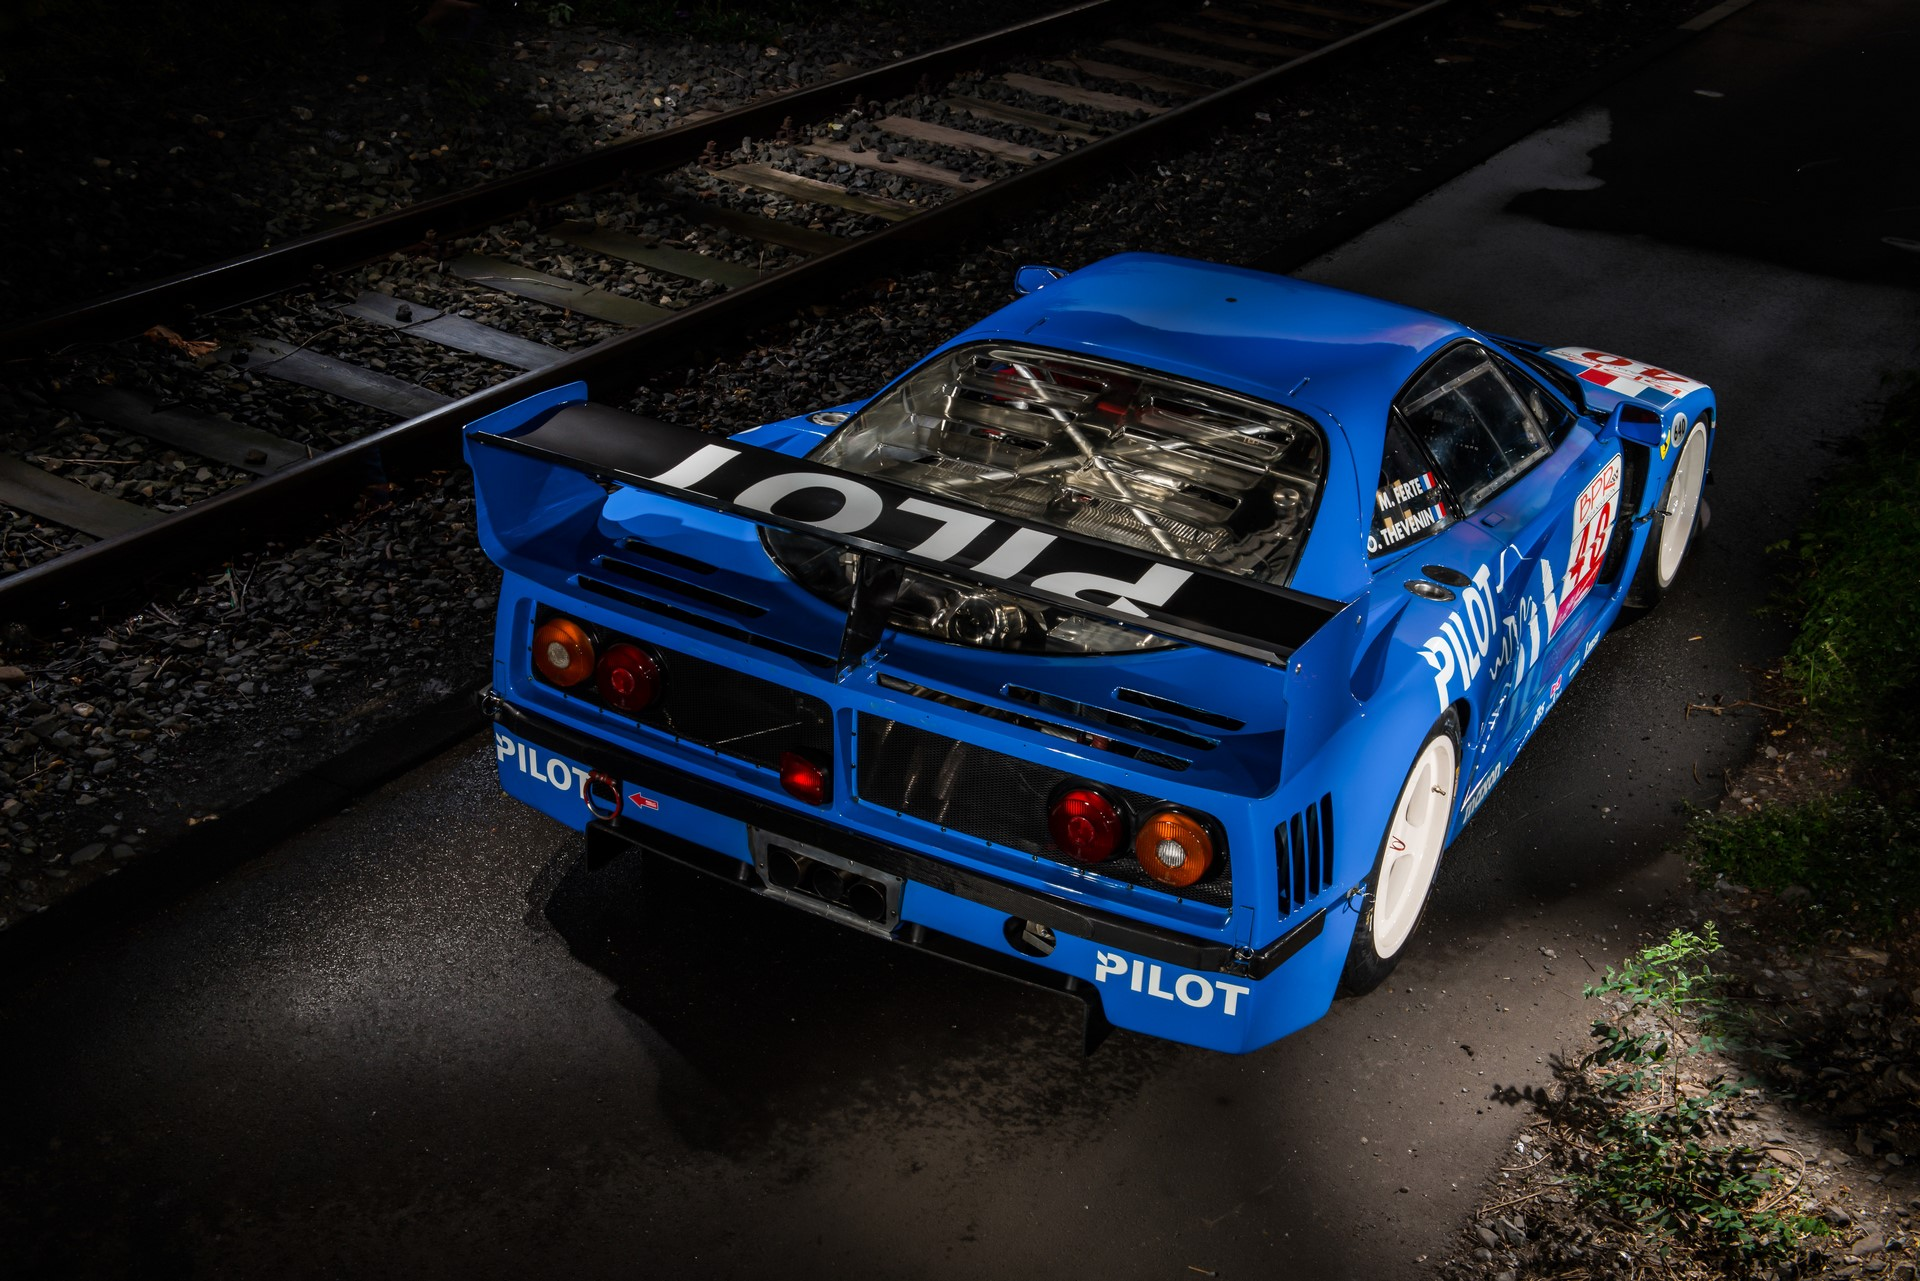 RM-SOTHEBY-S-ADDS-SPECTACULAR--SELDOM-SEEN-FERRARI-F40-LM-TO-PARIS-_1